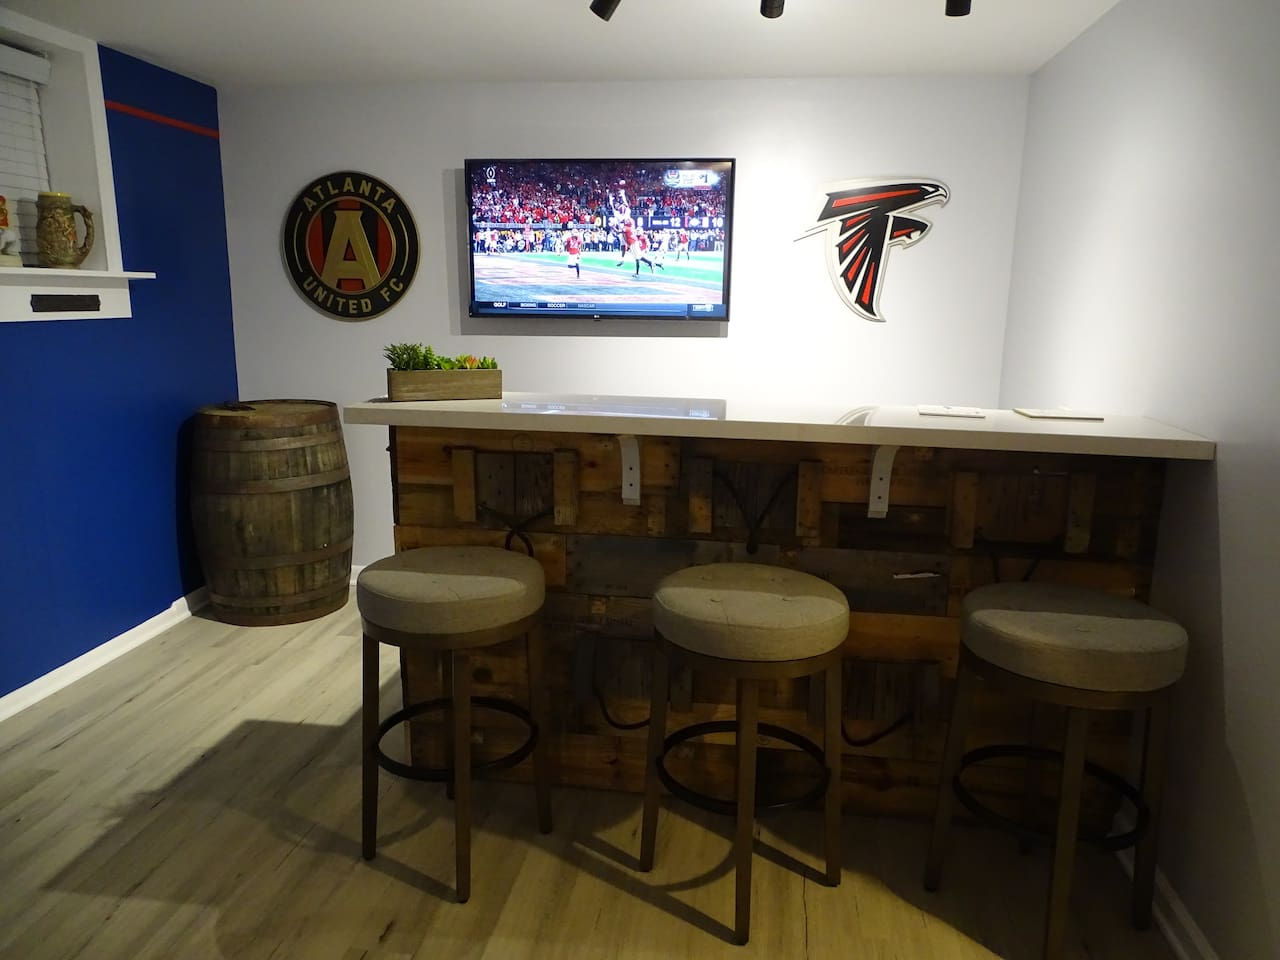 Brand new mancave with bar, custom logos of Atlanta teams, and TVs loaded with entertainment and sports